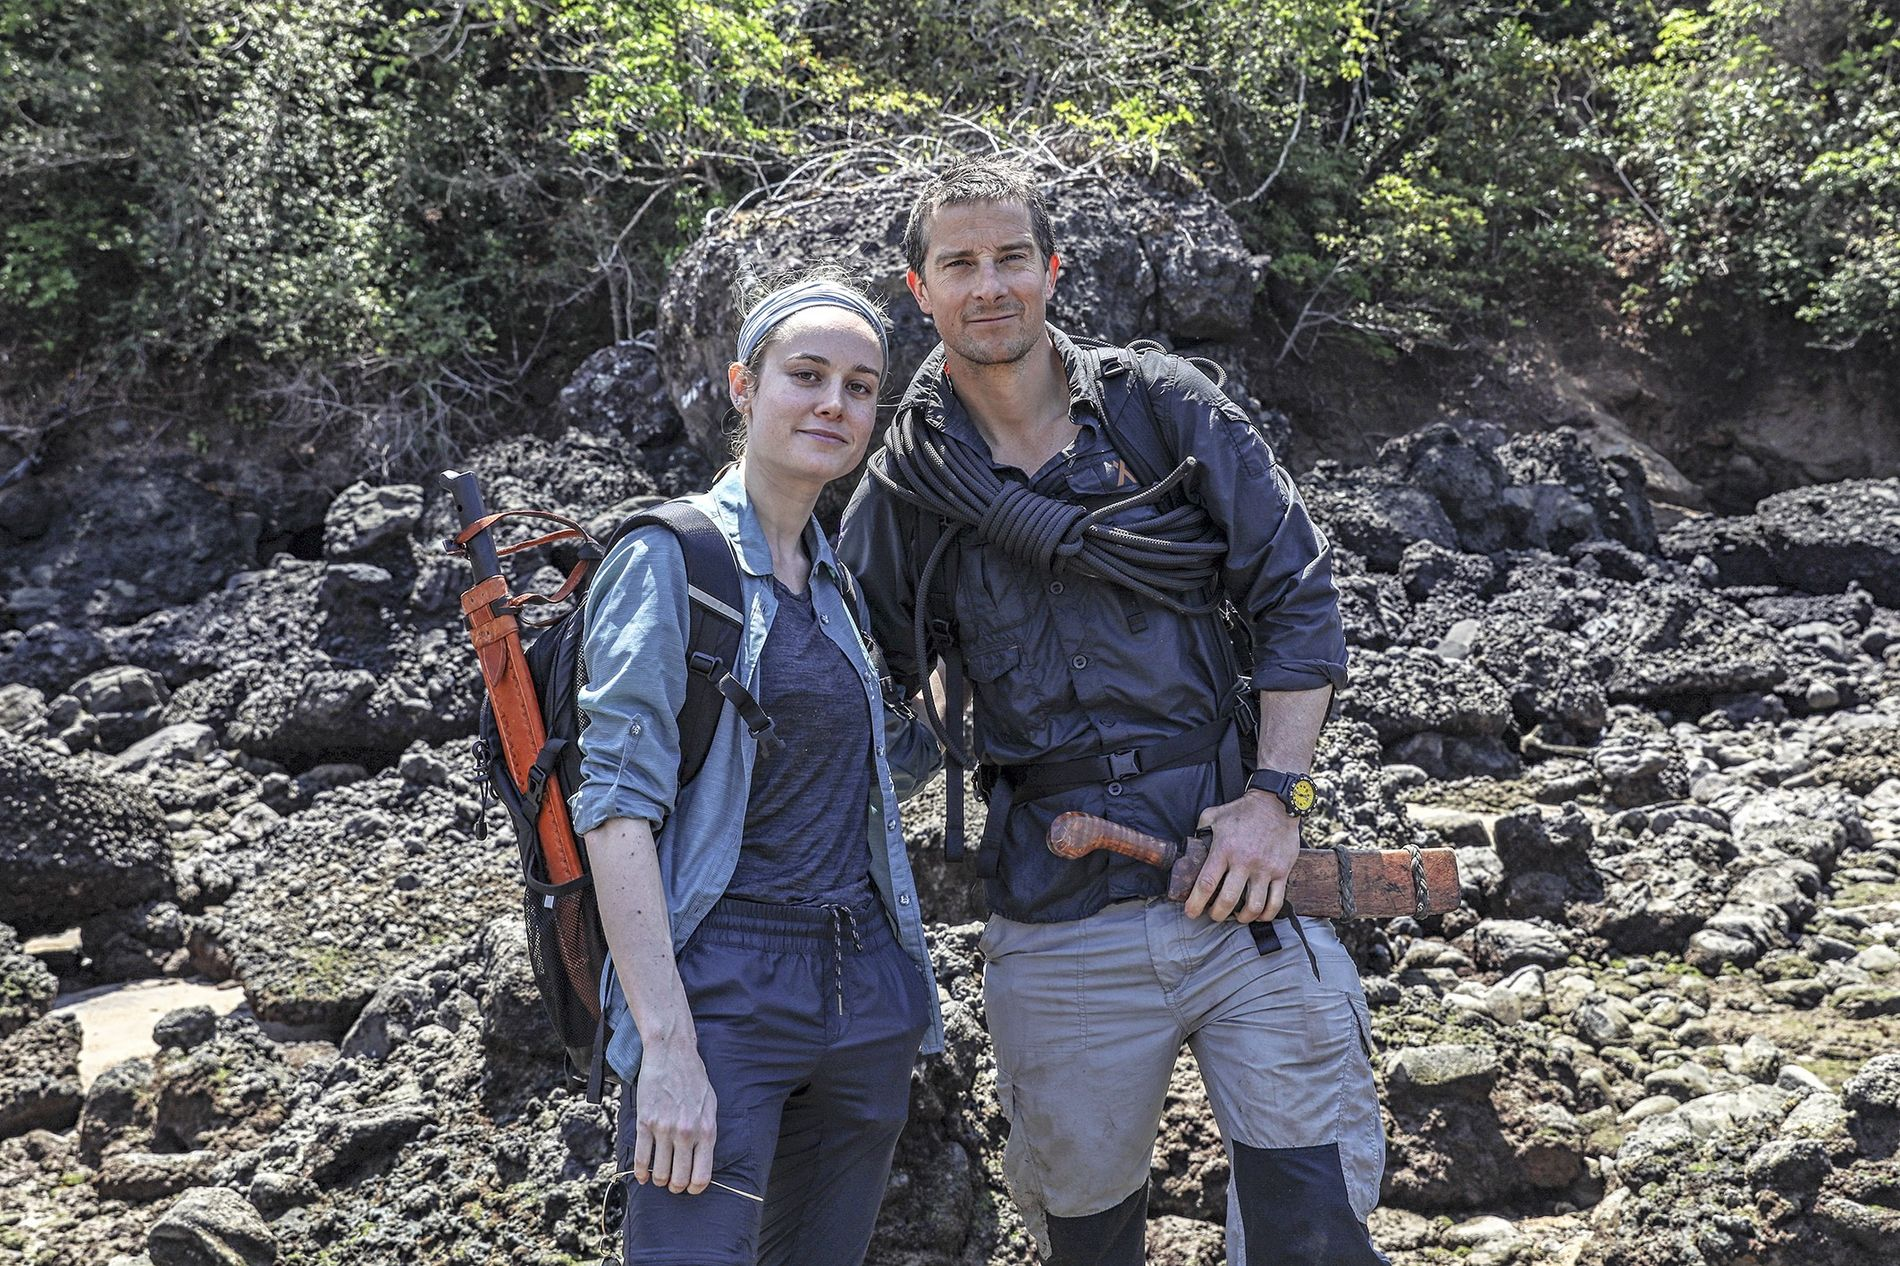 Captain Marvel star Brie Larson and Bear Grylls in Panama. This land of crocodiles, snakes and ...